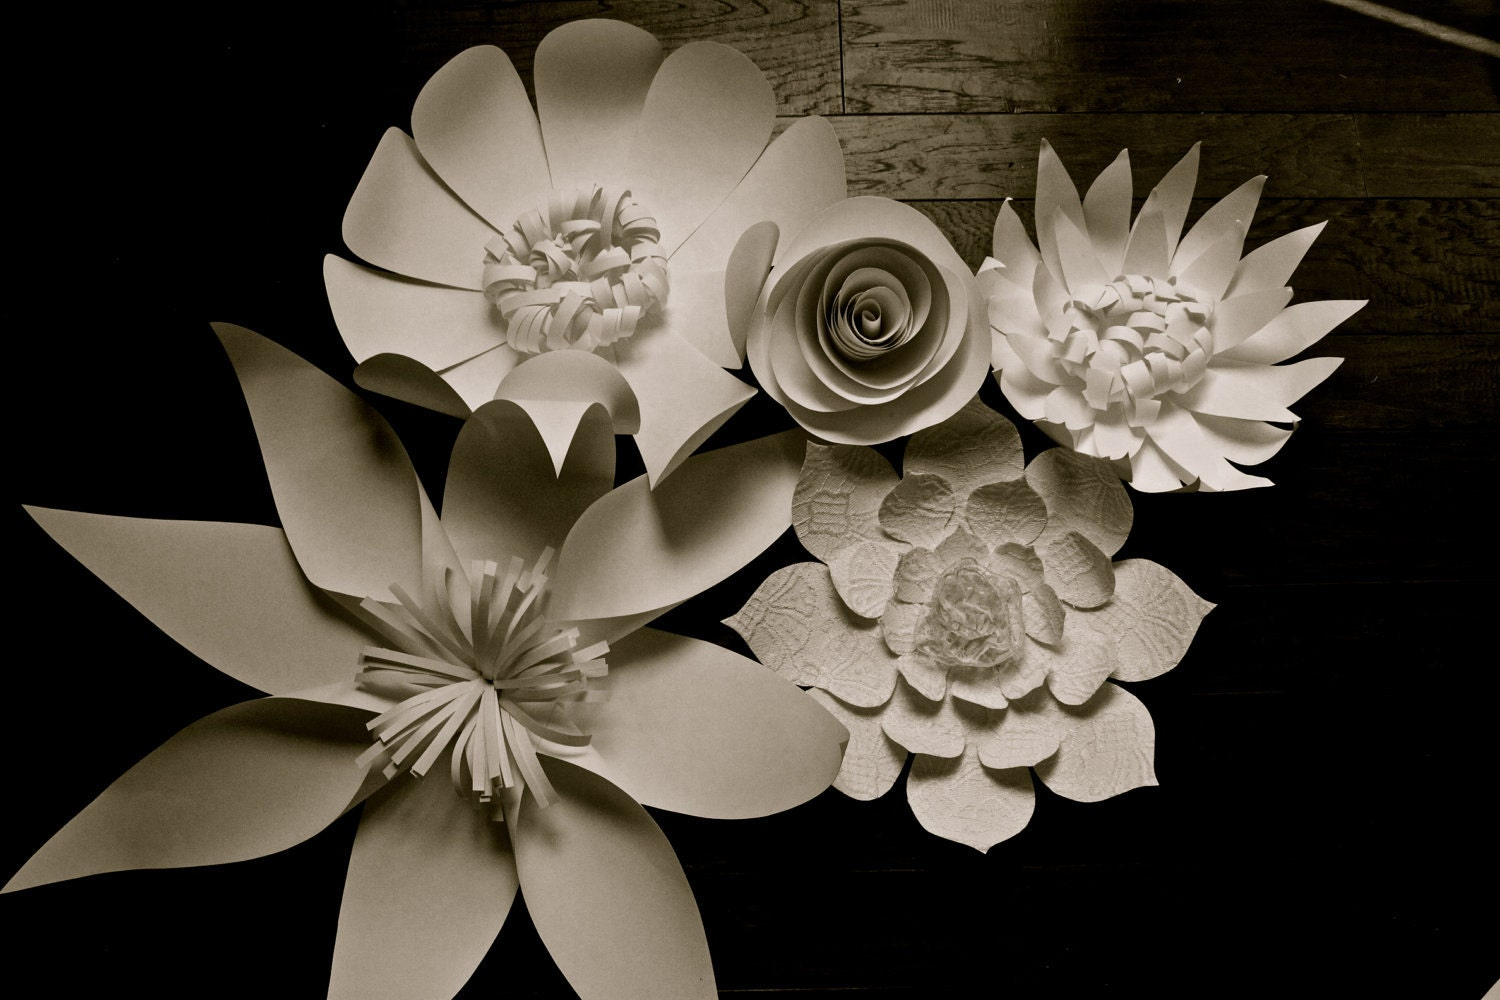 Paper Flower Wall Group 5 Flower Group White or Ivory Lace and